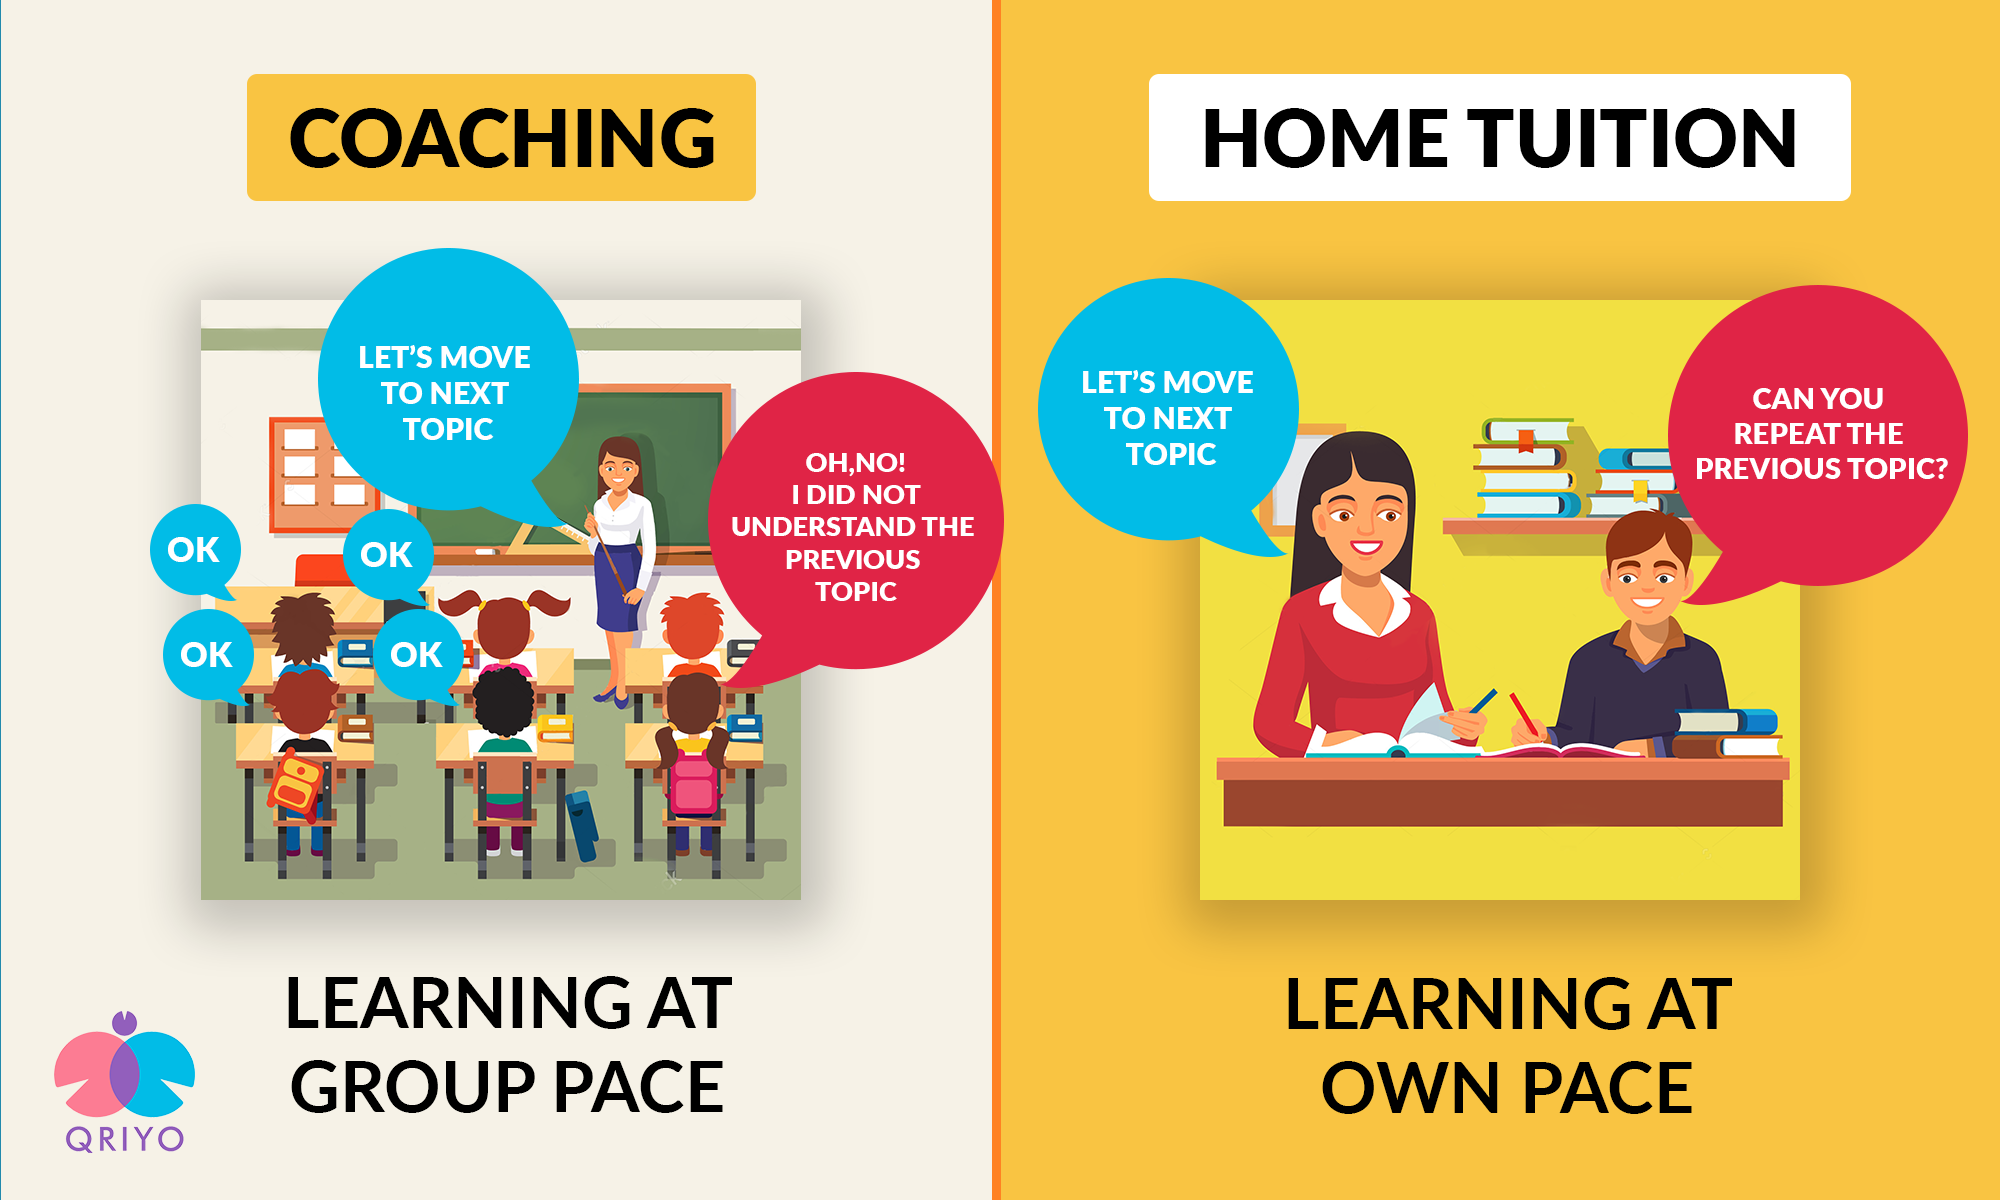 learn at your own pace at home or learn at group's pace at the coaching.